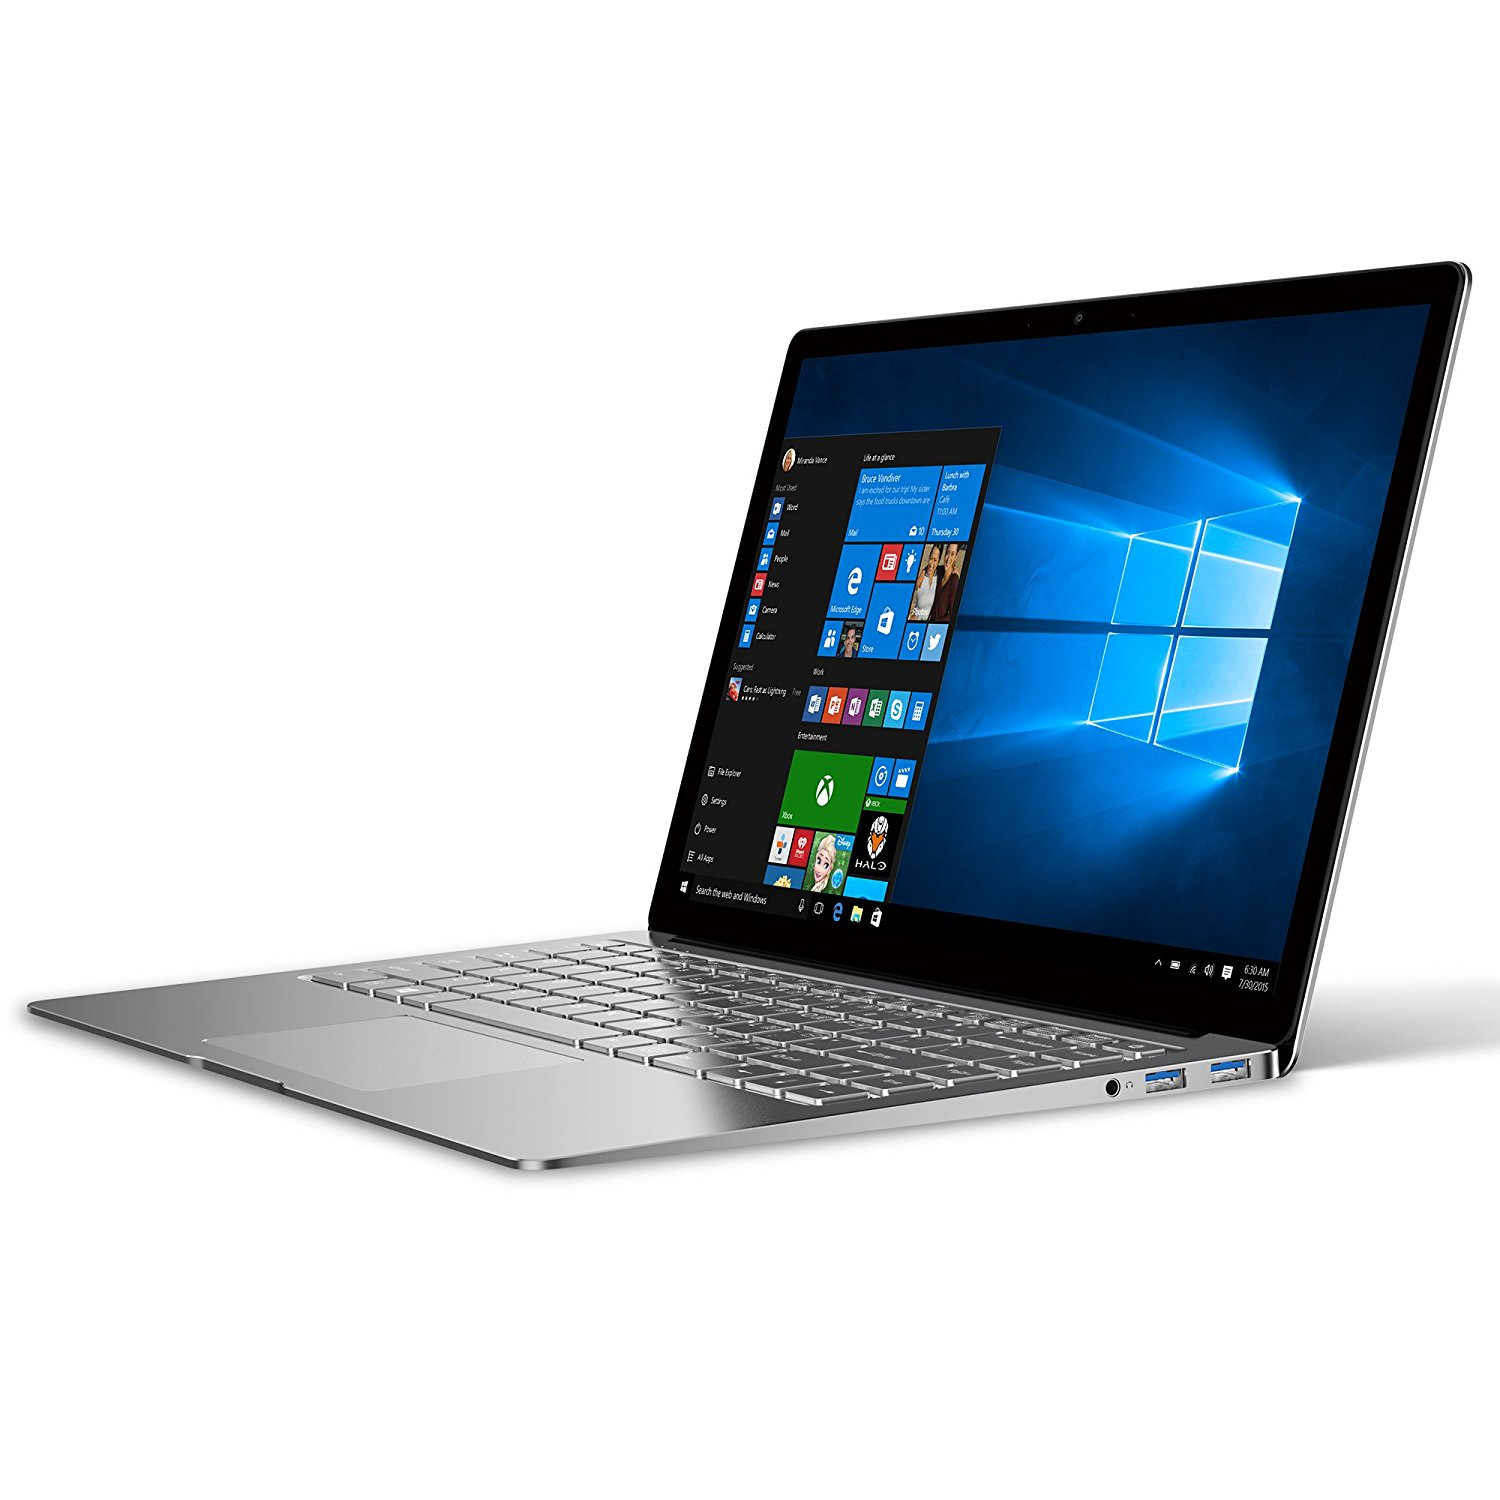 "(Neues Update) CHUWI Lapbook Air 14.1 Zoll Notebook bis zu 2,2 GHz Ultrabook Intel Celeron N3450 (14,1 ""FHD Display, 1920x1080P,Windows 10, 8GB RAM, 128GB ROM, G-Sensor)"